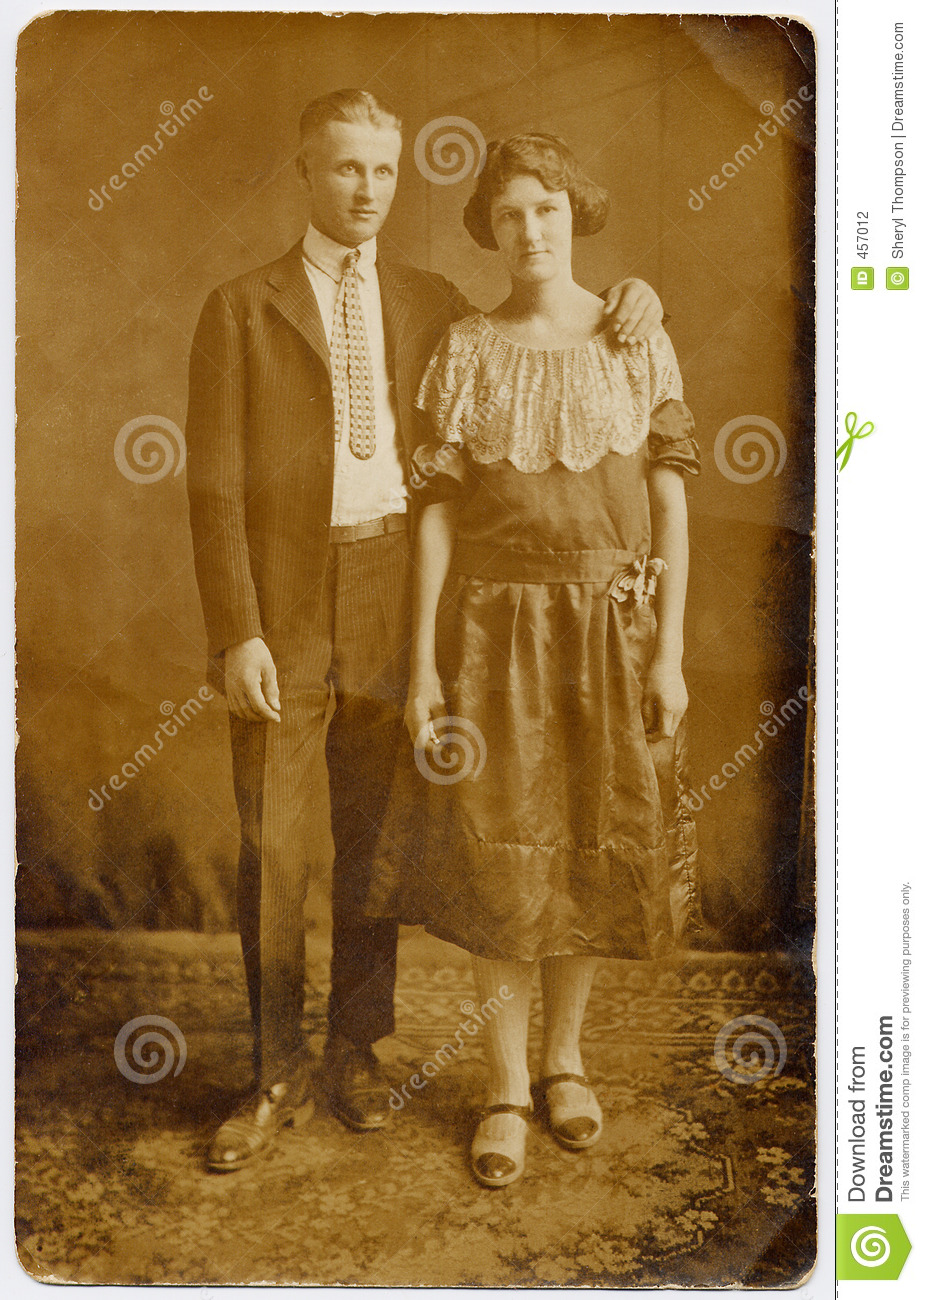 1920 S Couple Wedding Portrait Stock Photography Image